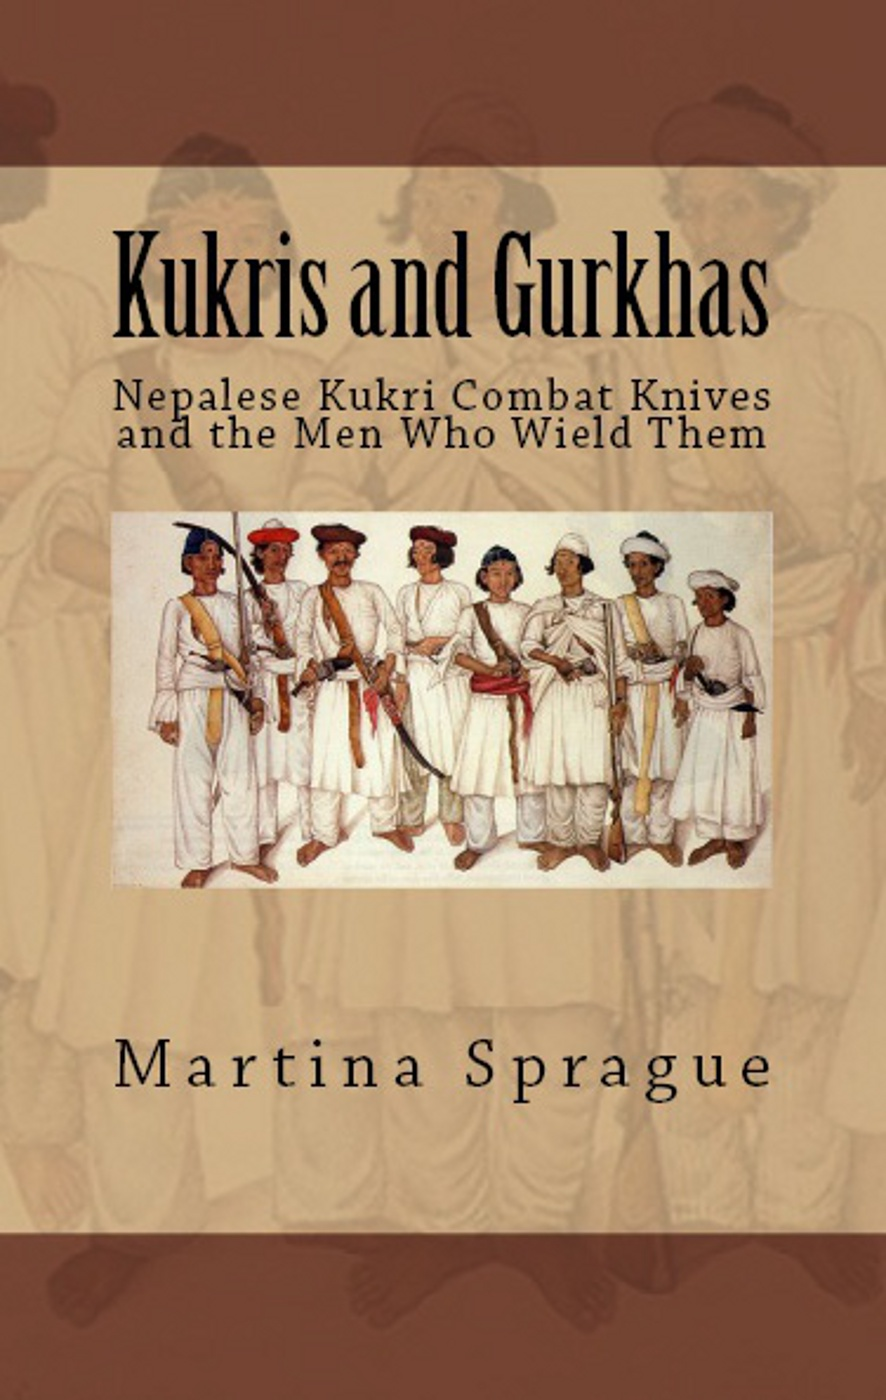 Kukris and Gurkhas